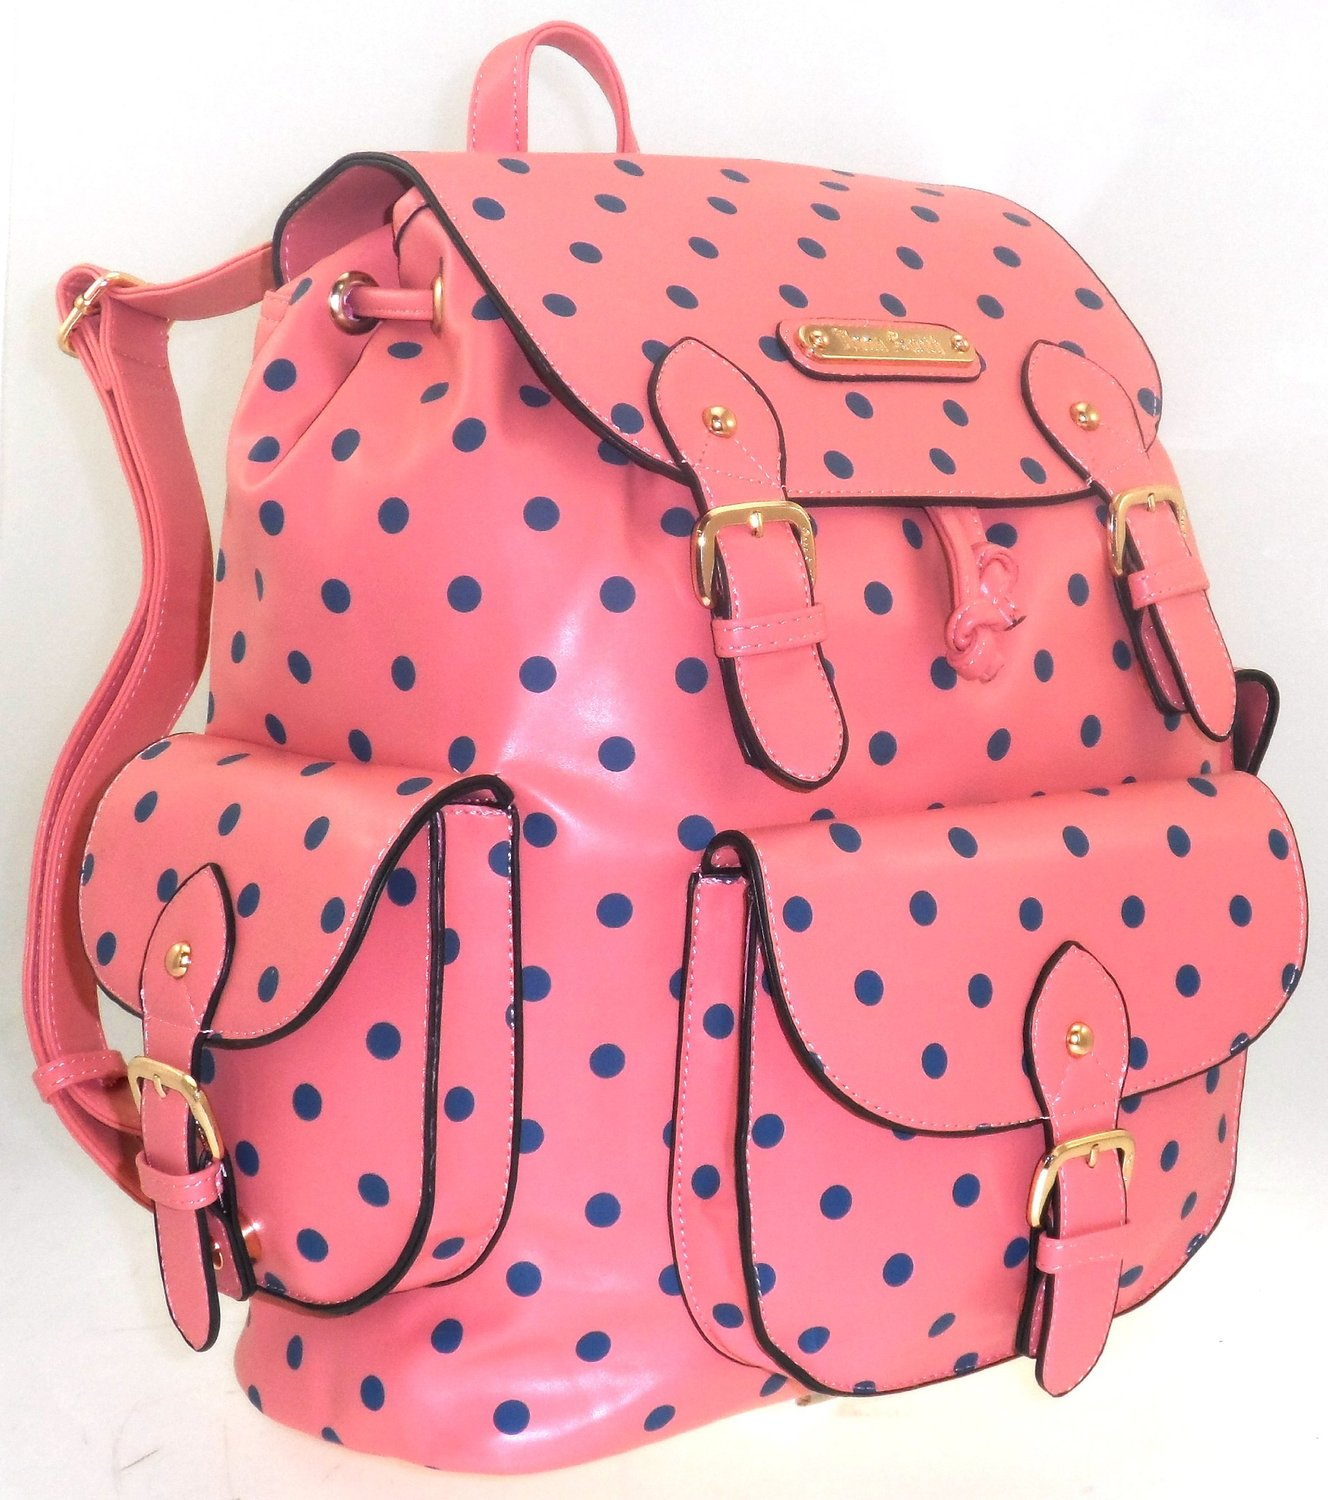 65c64fa6a729b3 LARGE LADIES ANNA SMITH POLKA DOT SCHOOL COLLEGE SHOULDER BACKPACK RUCKSACK  BAG PEACH: Amazon.co.uk: Shoes & Bags